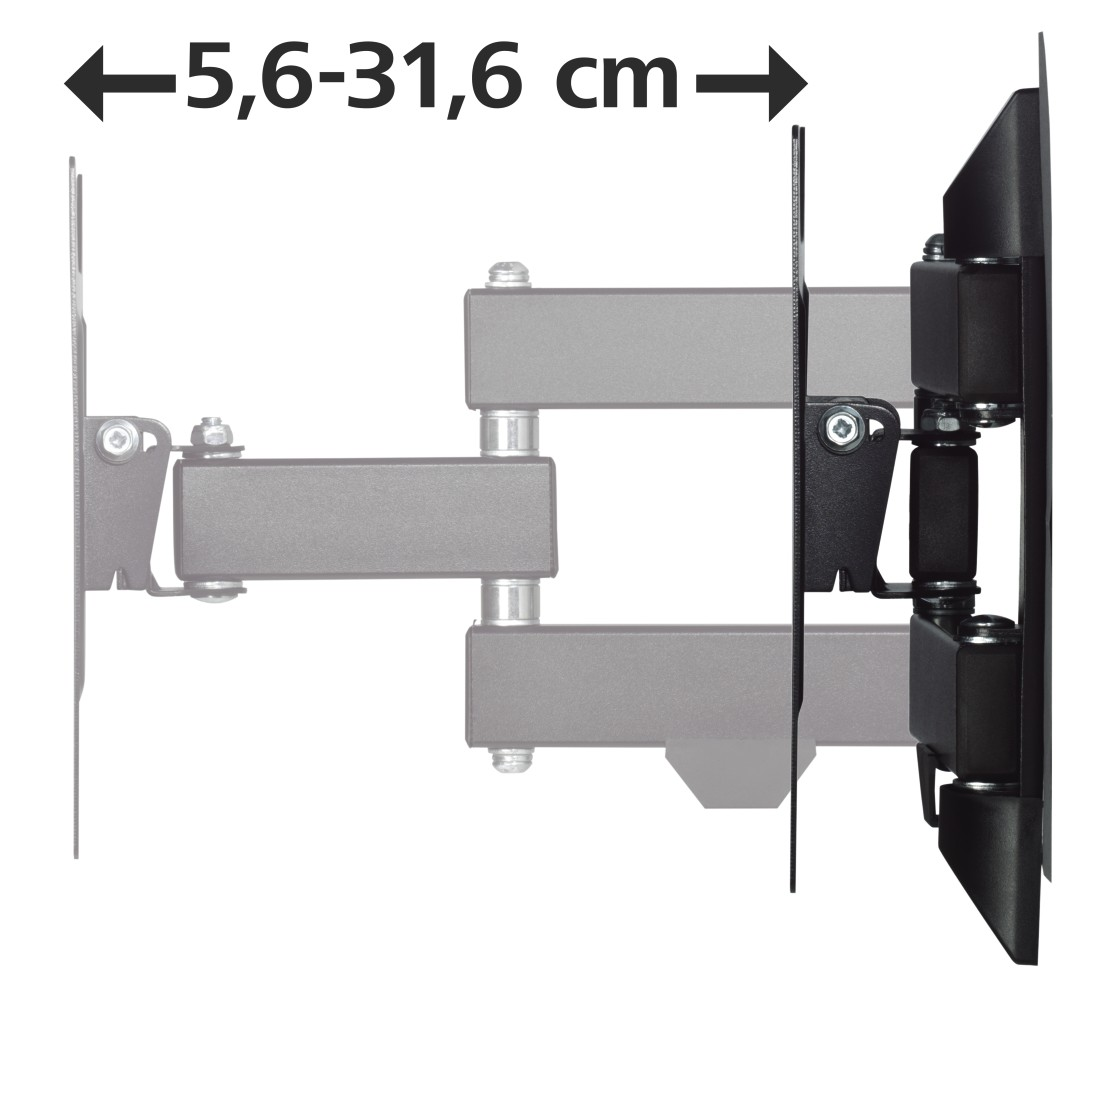 "dex3 High-Res Detail 3 - Hama, FULLMOTION TV Wall Bracket, 1 Star, 200x200, 122cm (48""), 2 arms, black"